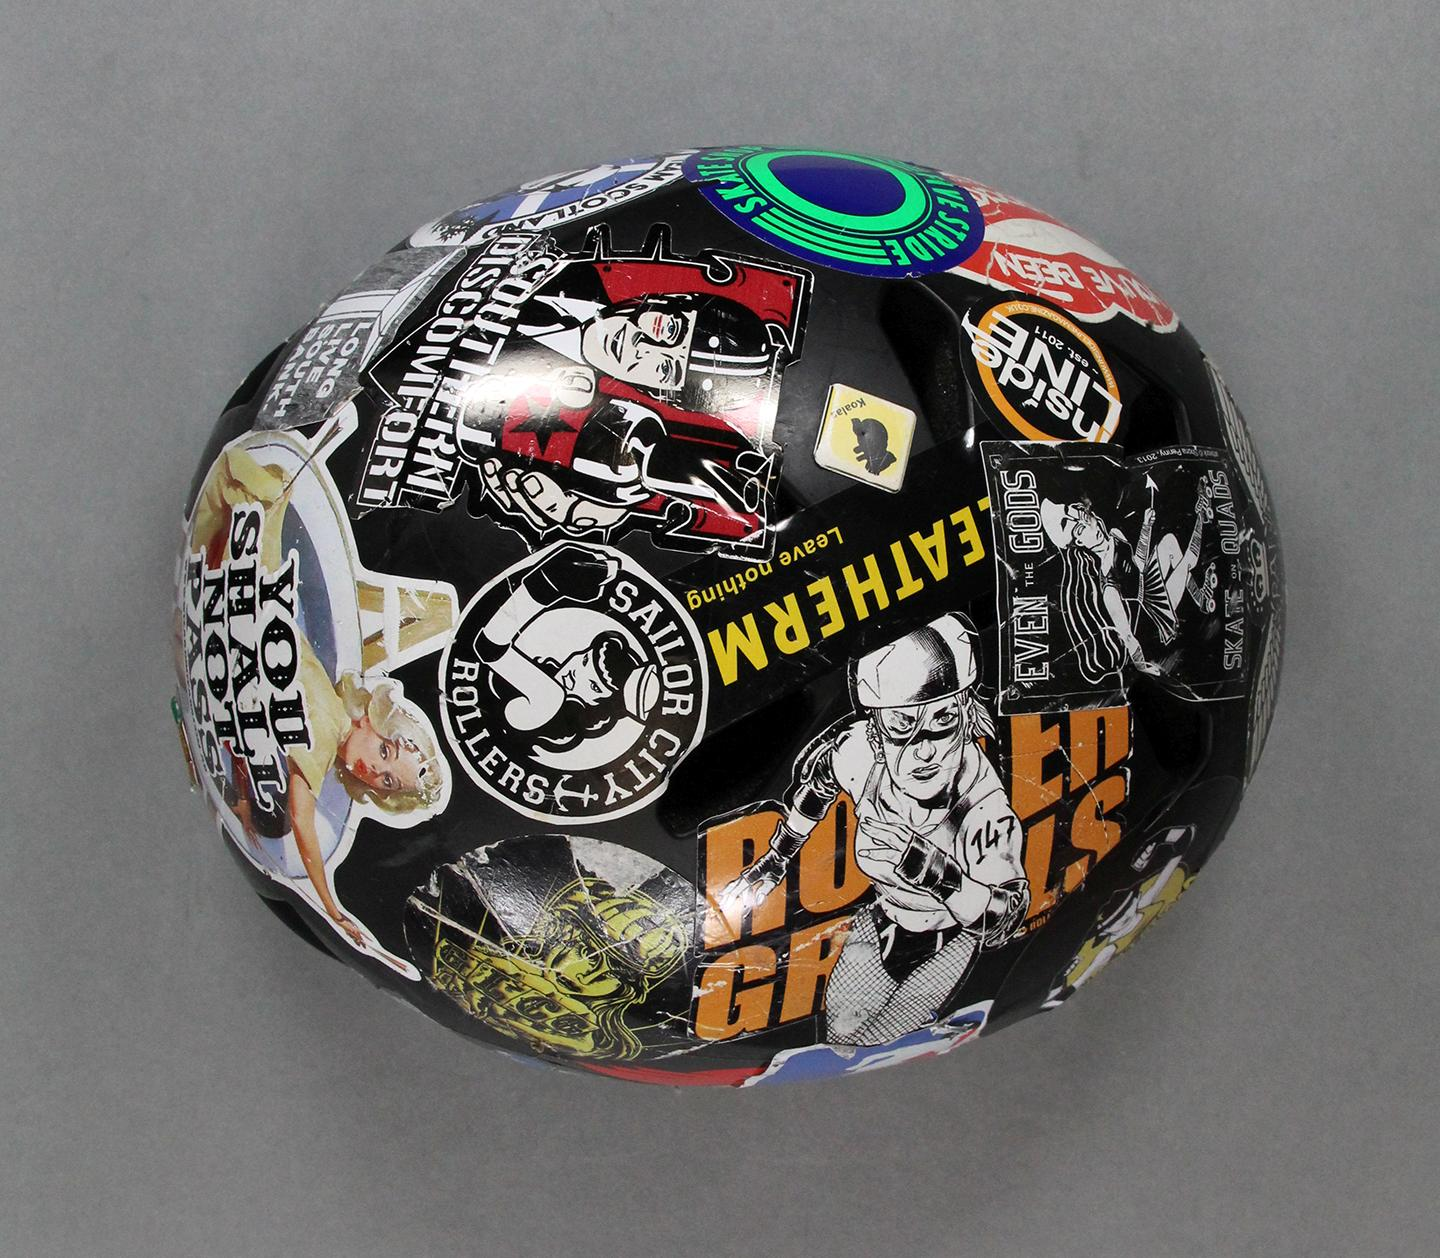 Skate helmet donated by skater Deadly DeVito #0.5. The helmet is covered in colourful roller derby and brand stickers